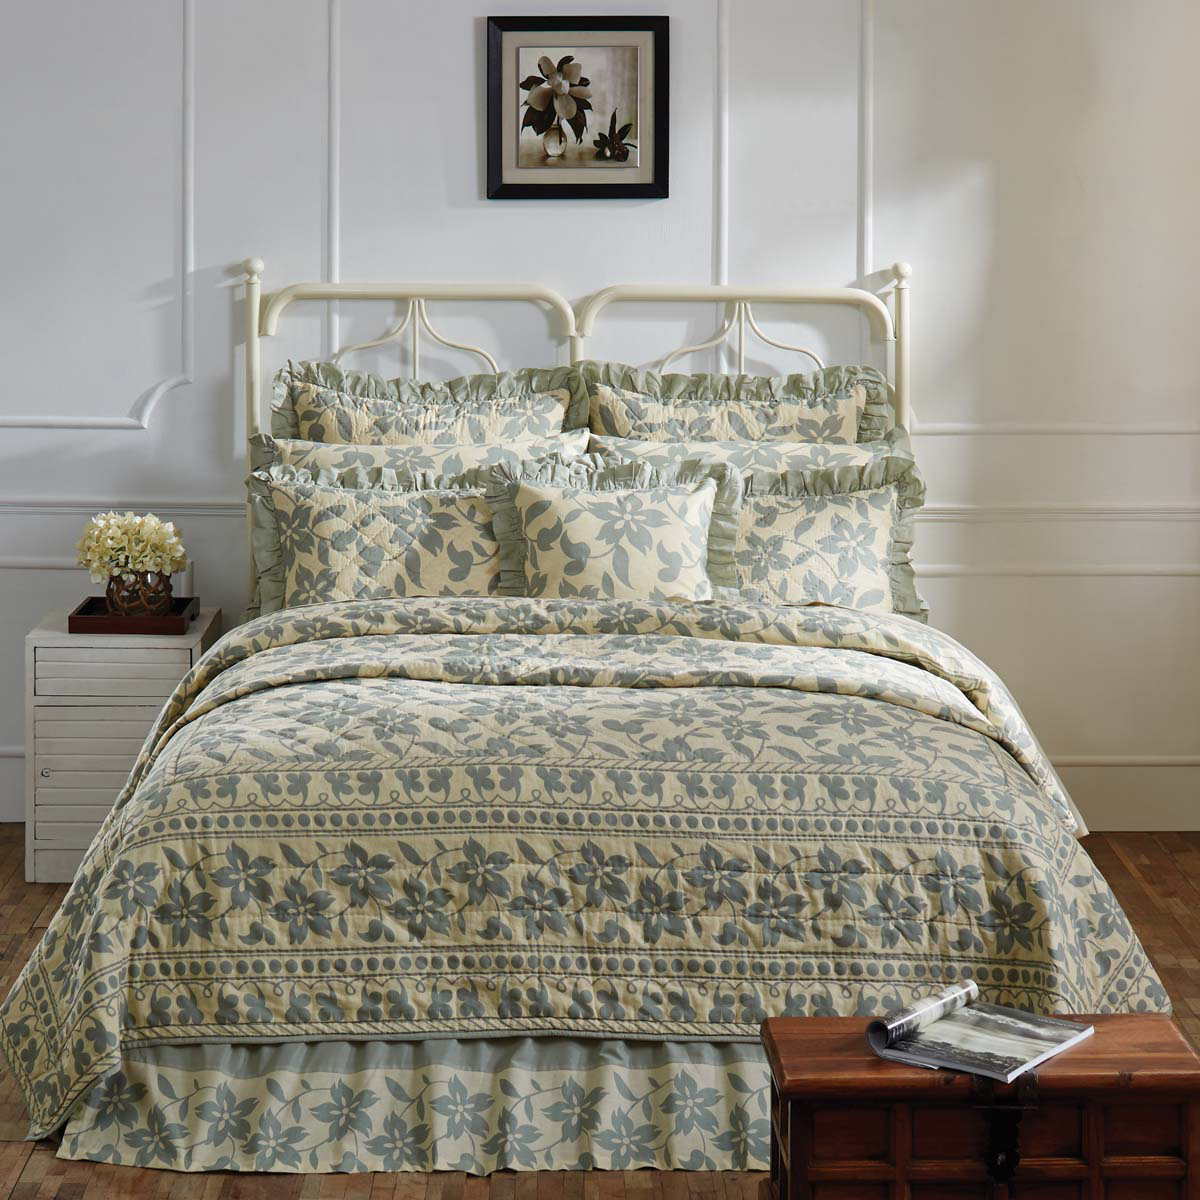 Briar Sage California King Quilt Set - 6 Pieces - Sale Priced - $45 Off - Vhc